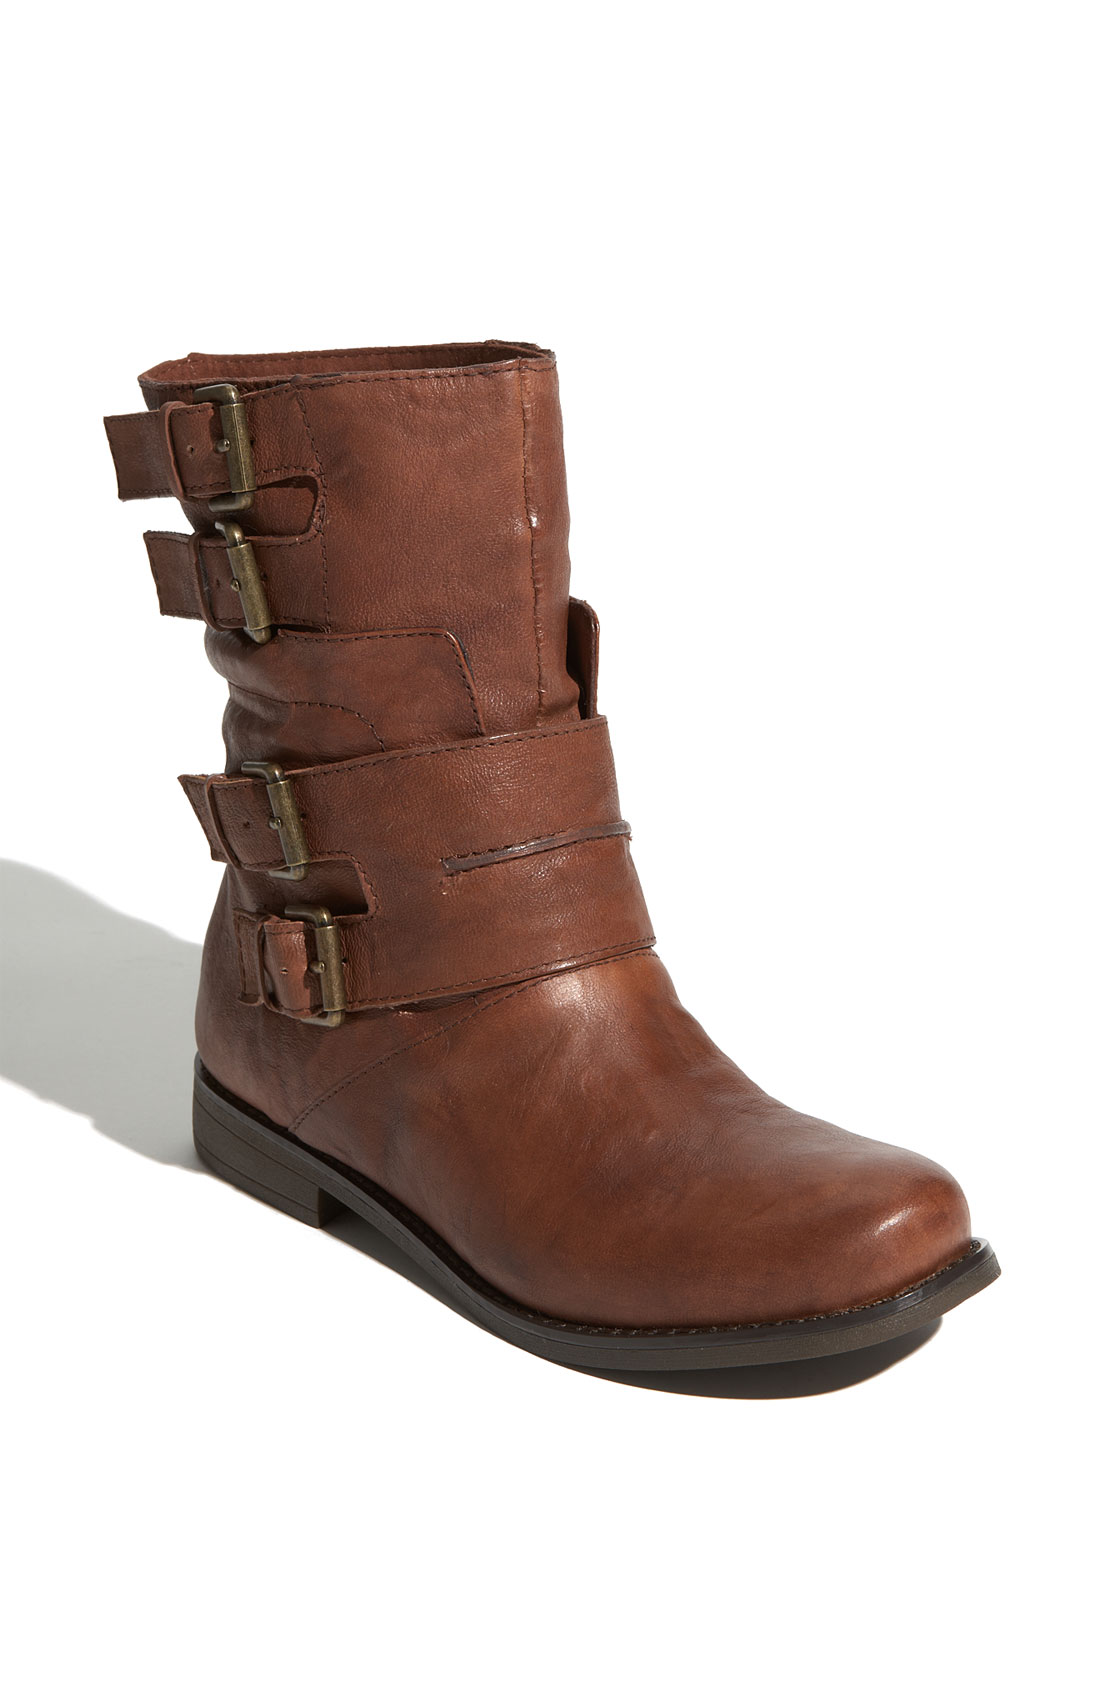 nine west fango boot in brown brown leather lyst